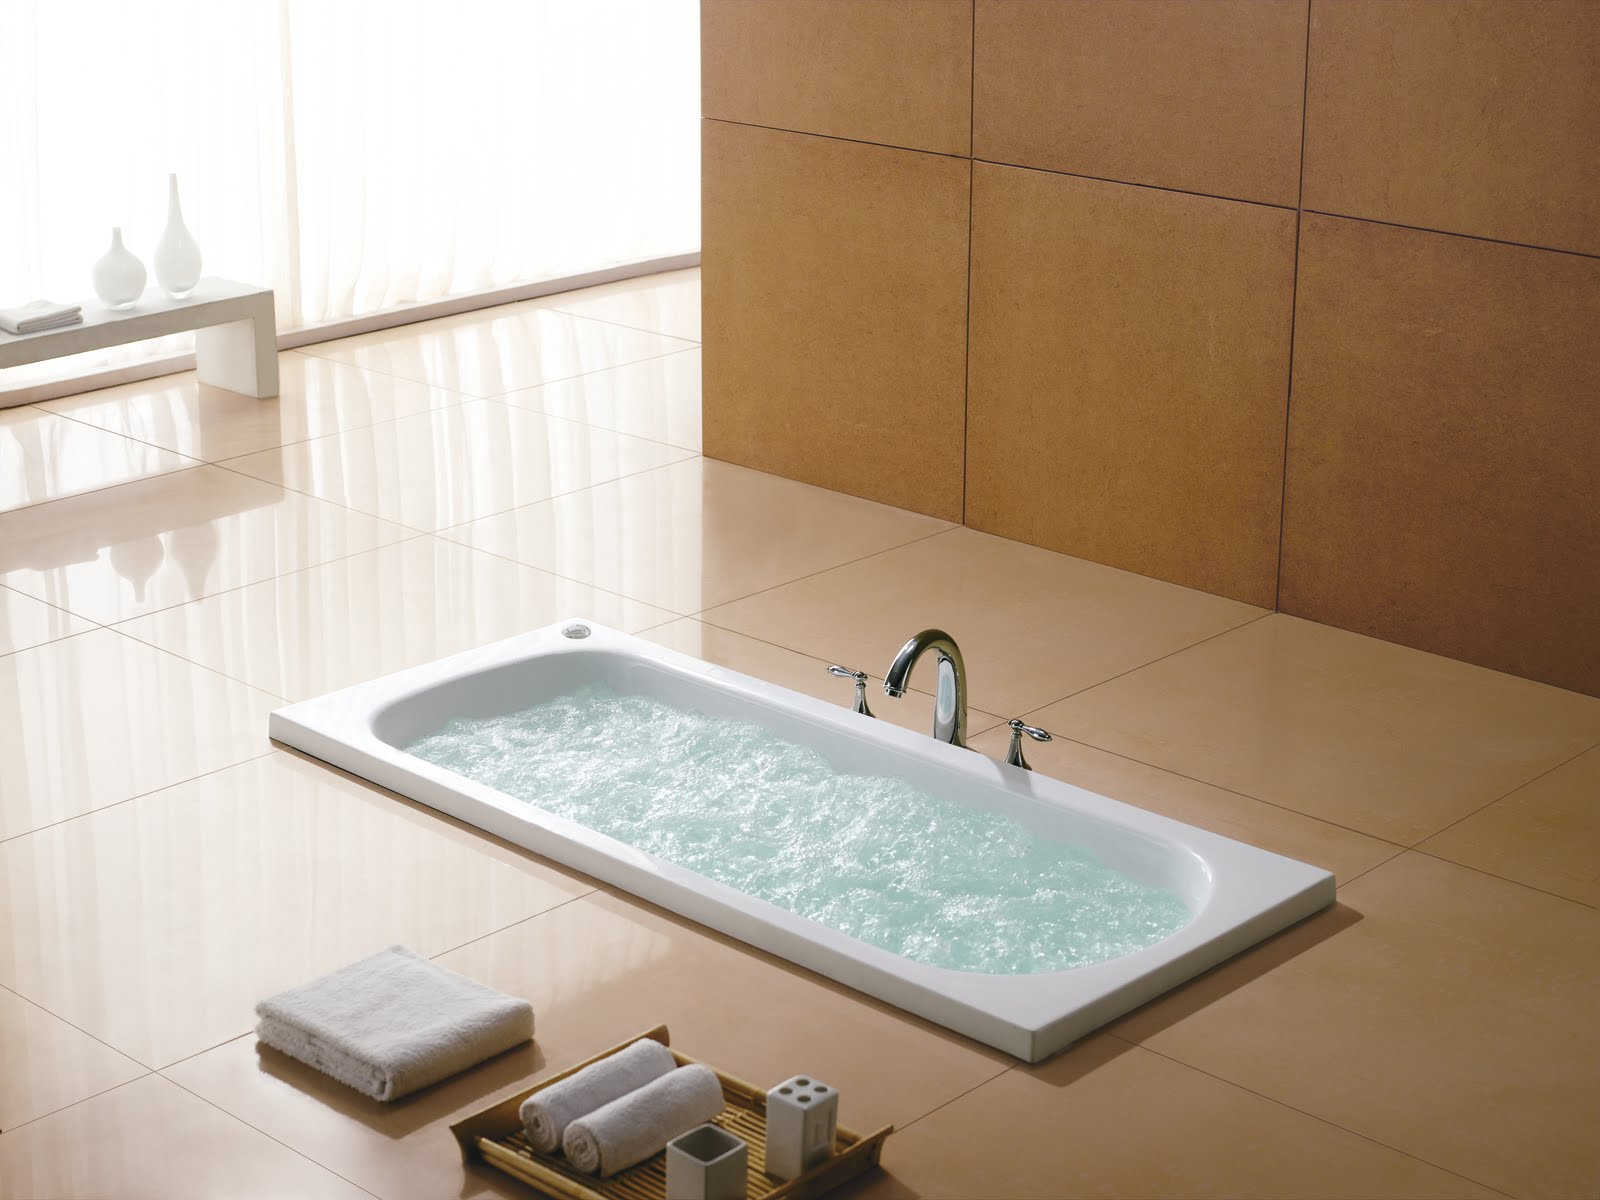 Luxury whirlpool baths from ssww for Royal whirlpool baths